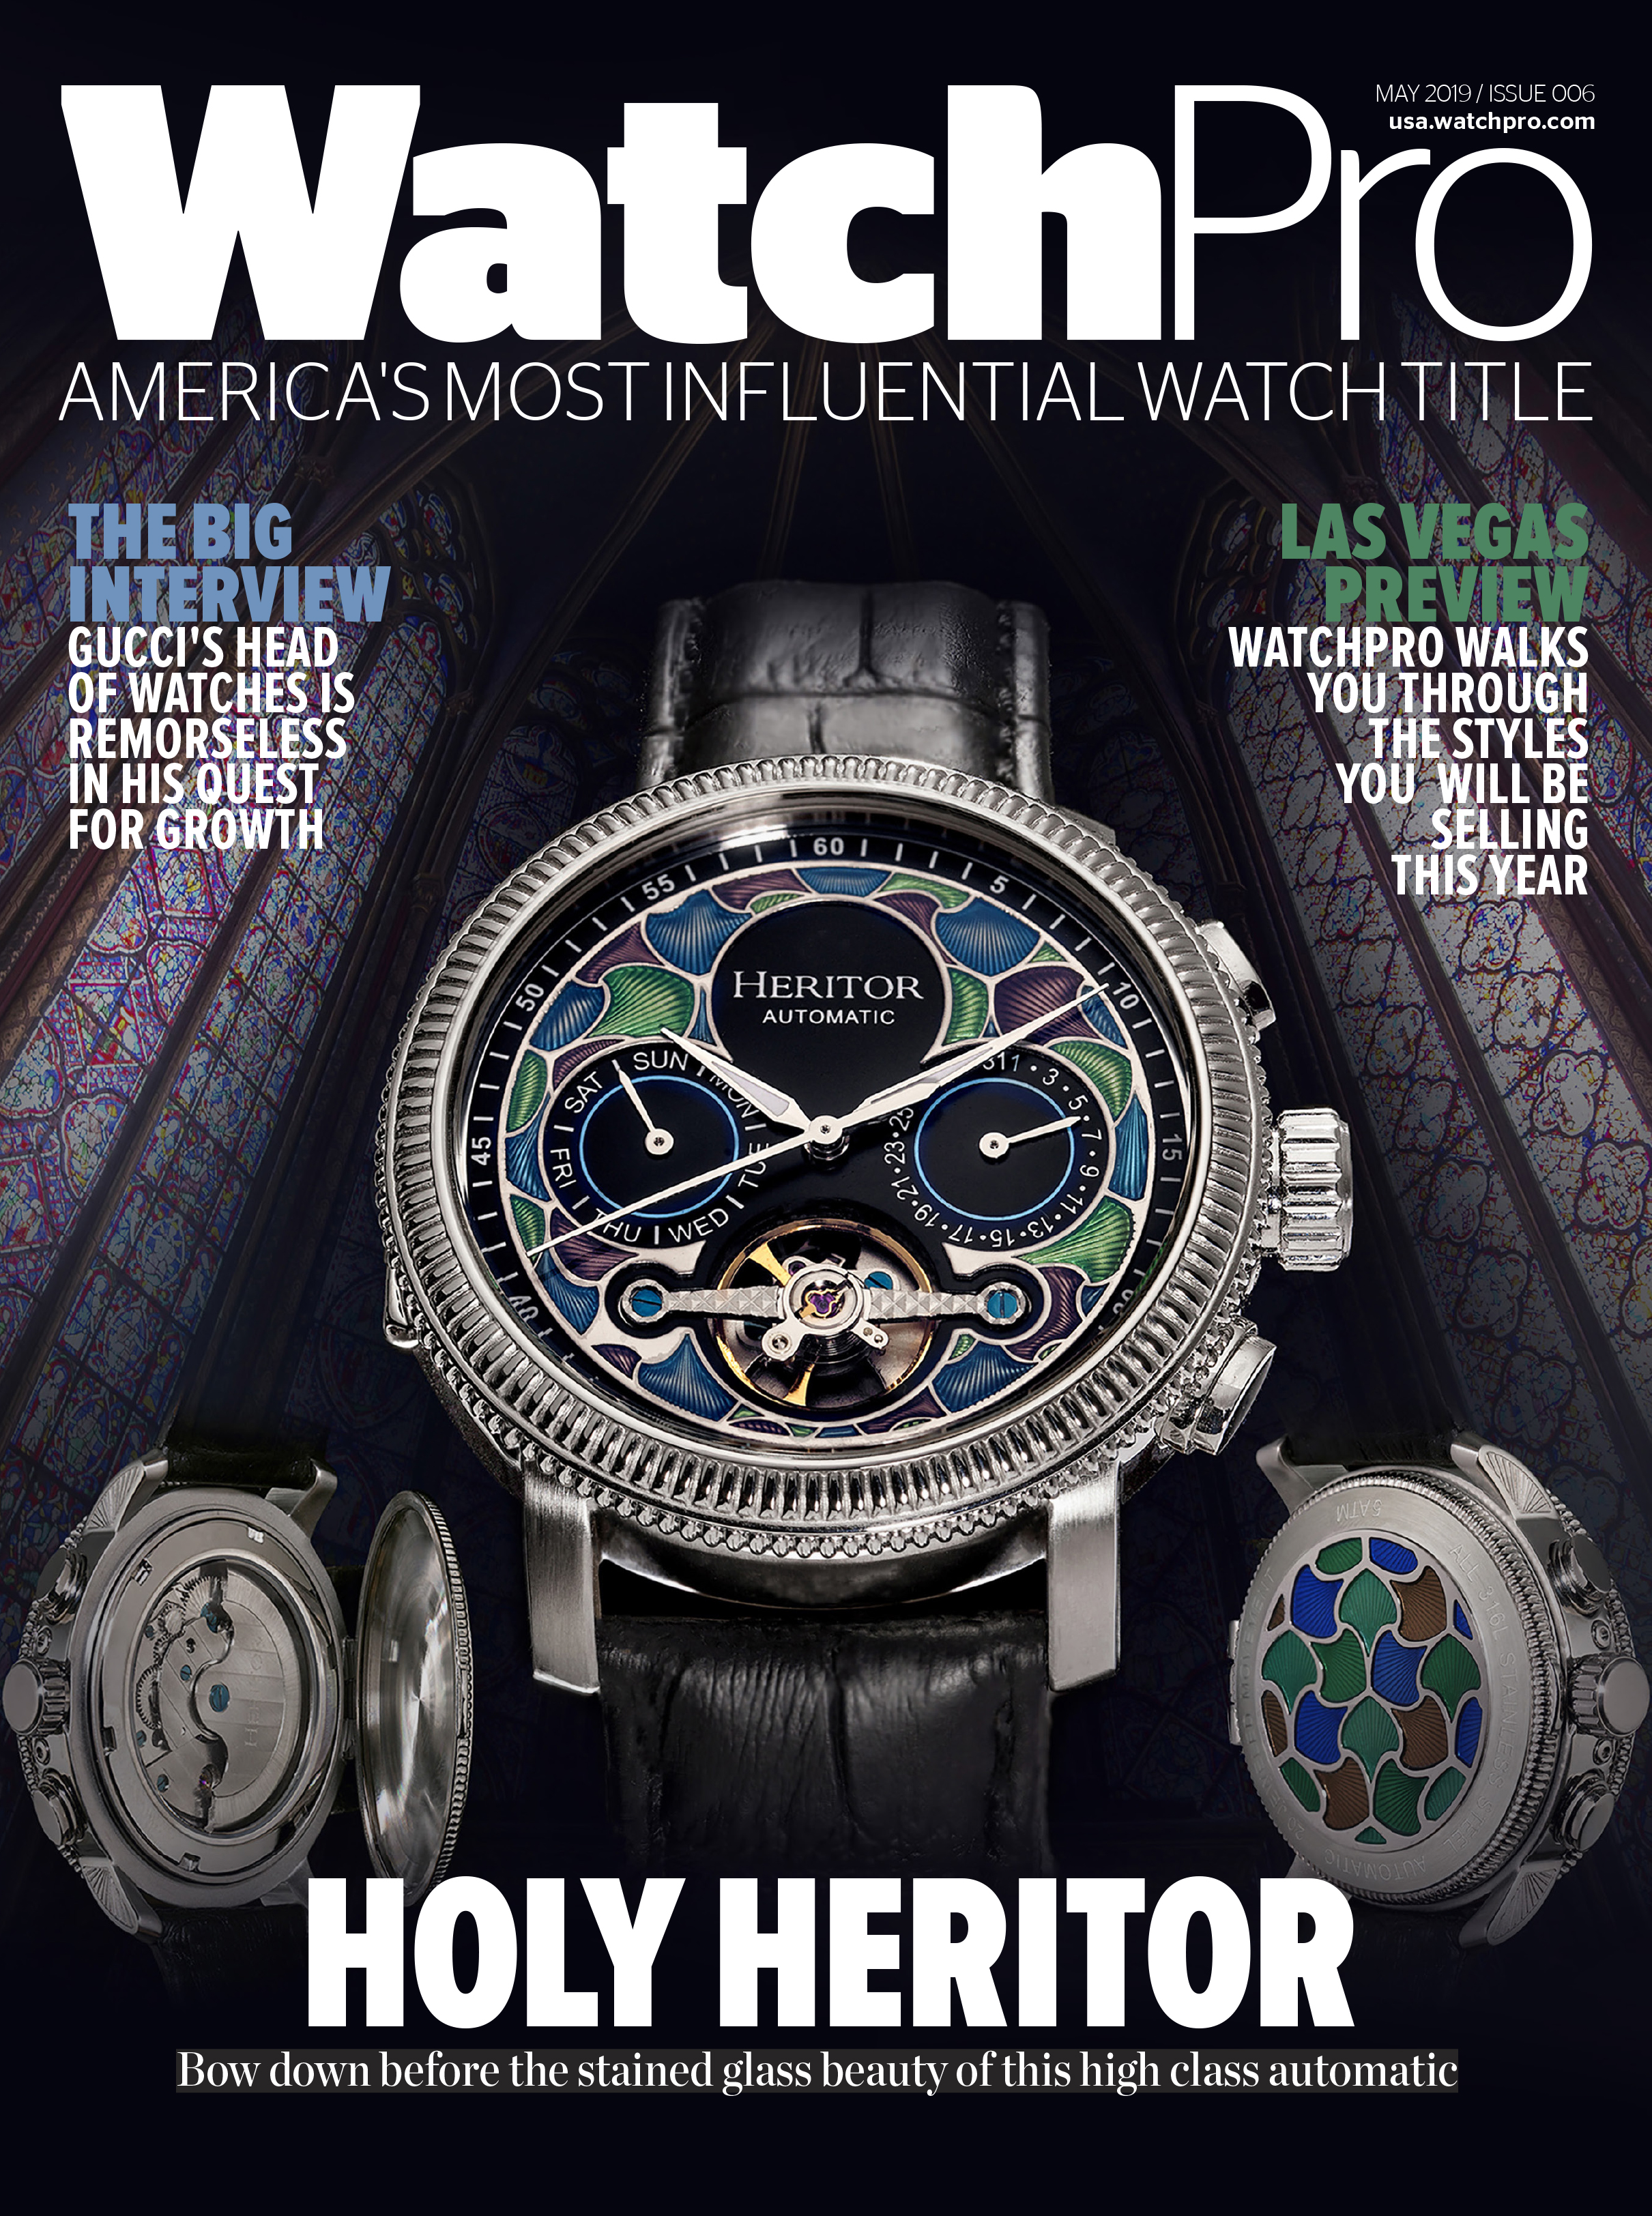 Watch Pro May 2019 Edition - Heritor Aura Mens Watch